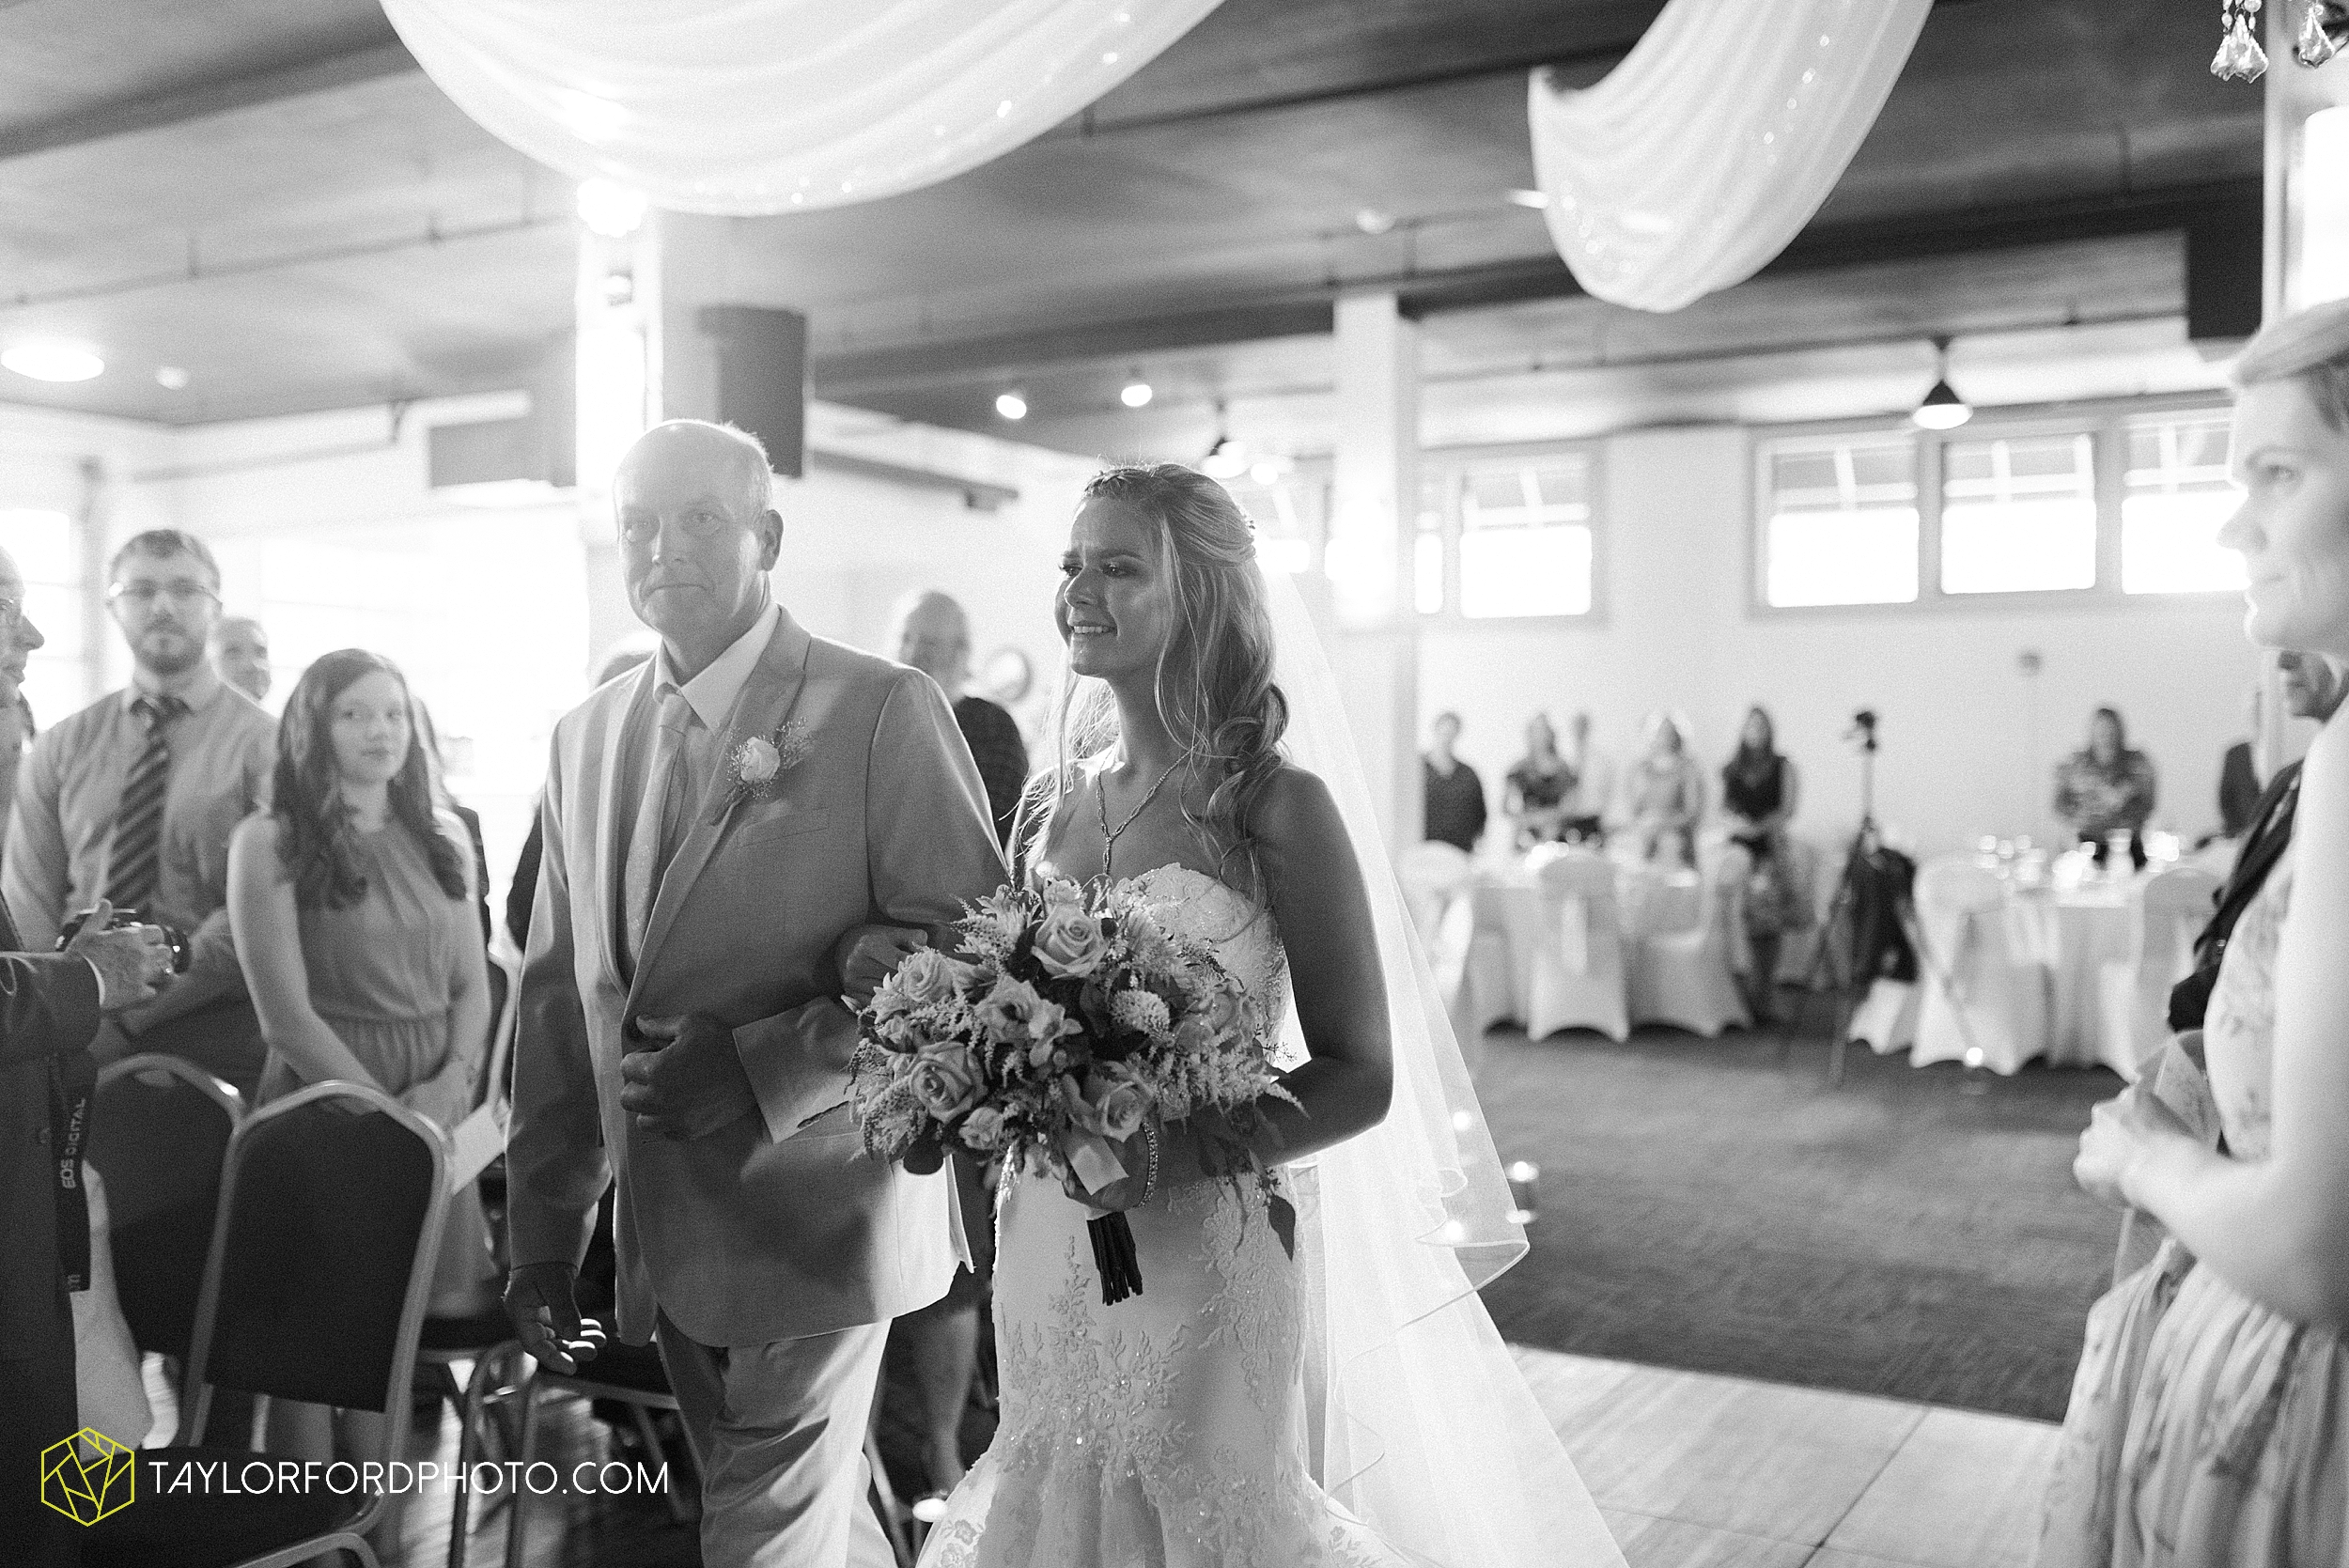 toledo-ohio-wedding-the-park-inn-by-radisson-hotel-art-museum-summit-event-center-photography-taylor-ford-hirschy-photographer_3683.jpg